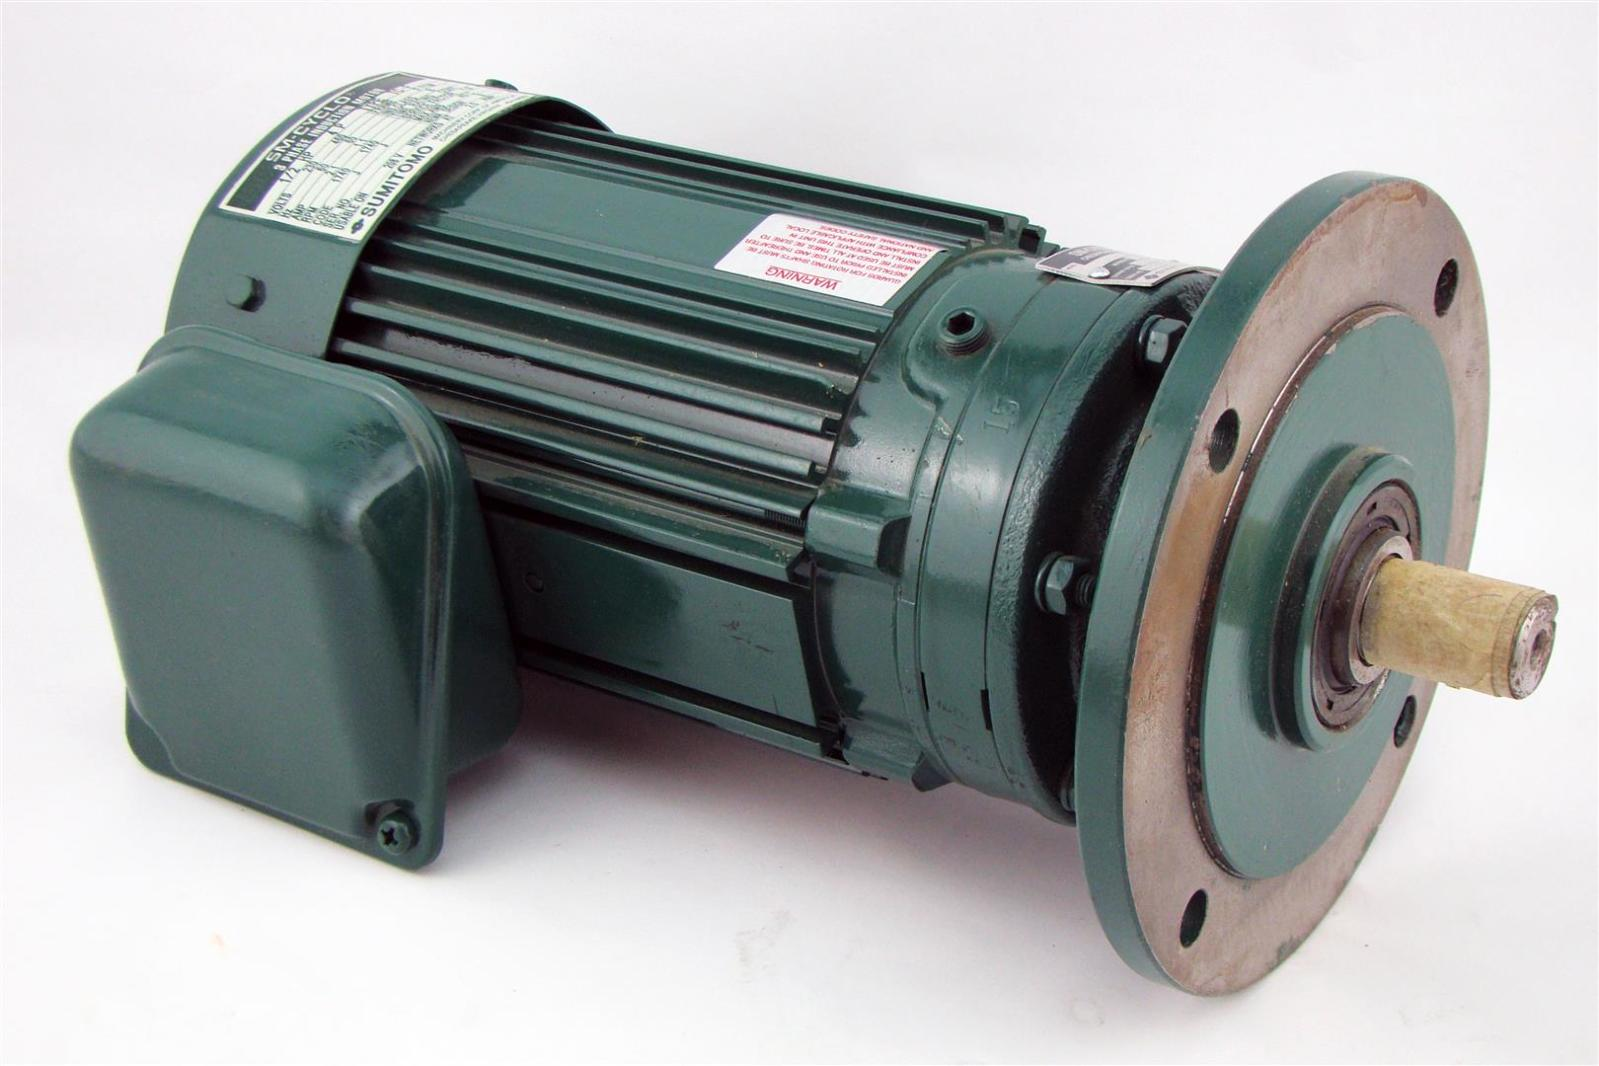 Sumitomo Sm Cyclo 3ph Induction Motor 1 2hp 230 460v 2 1a 1740rpm Cnvm054085ya15 Joseph Fazzio